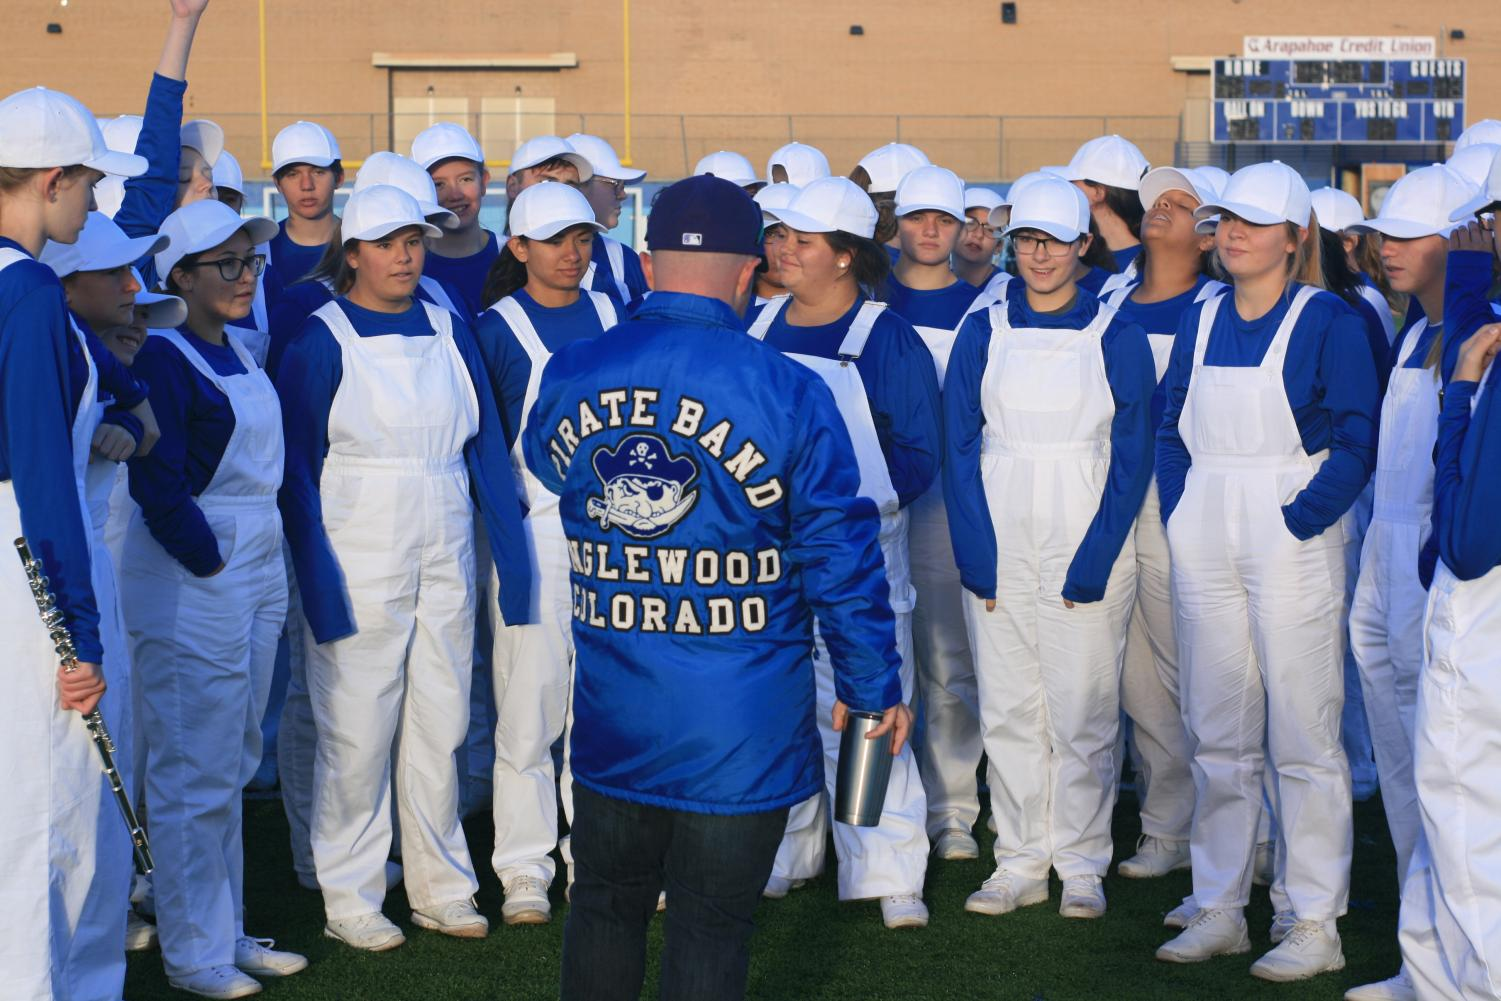 Band Director Phil Emery (in blue jacket) organizes students ahead of the state competition.